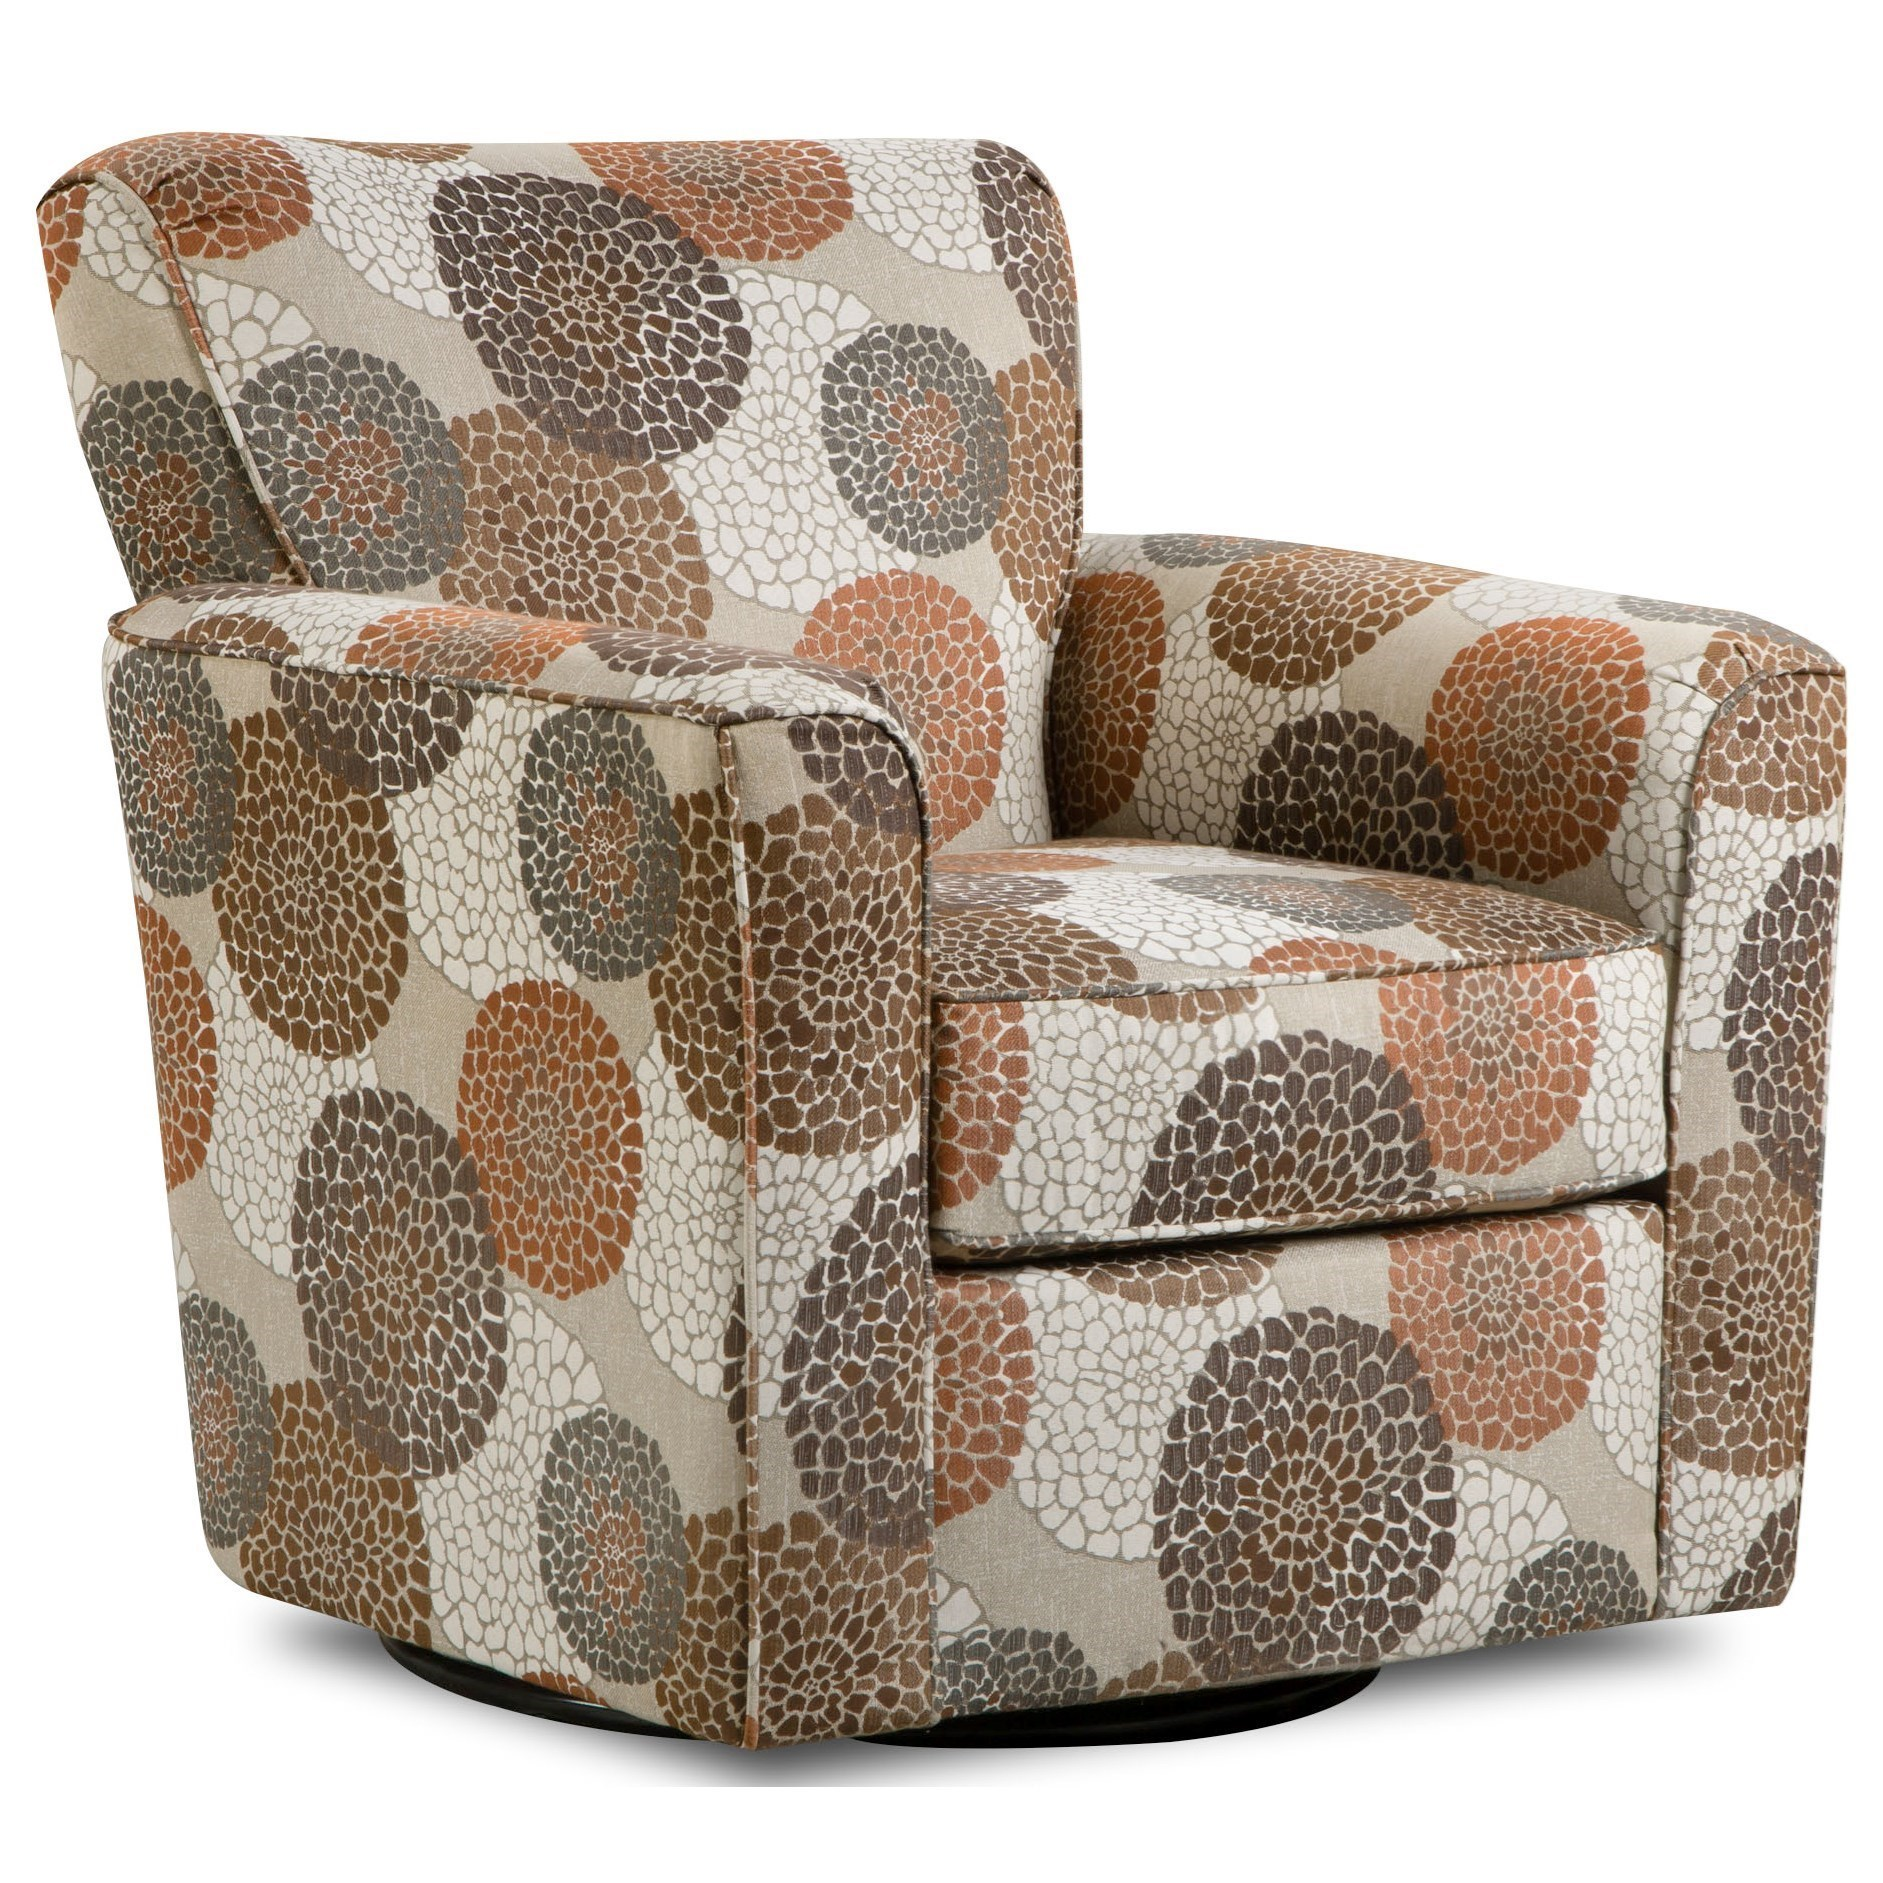 United Furniture Industries 160 Casual Swivel Glider Chair